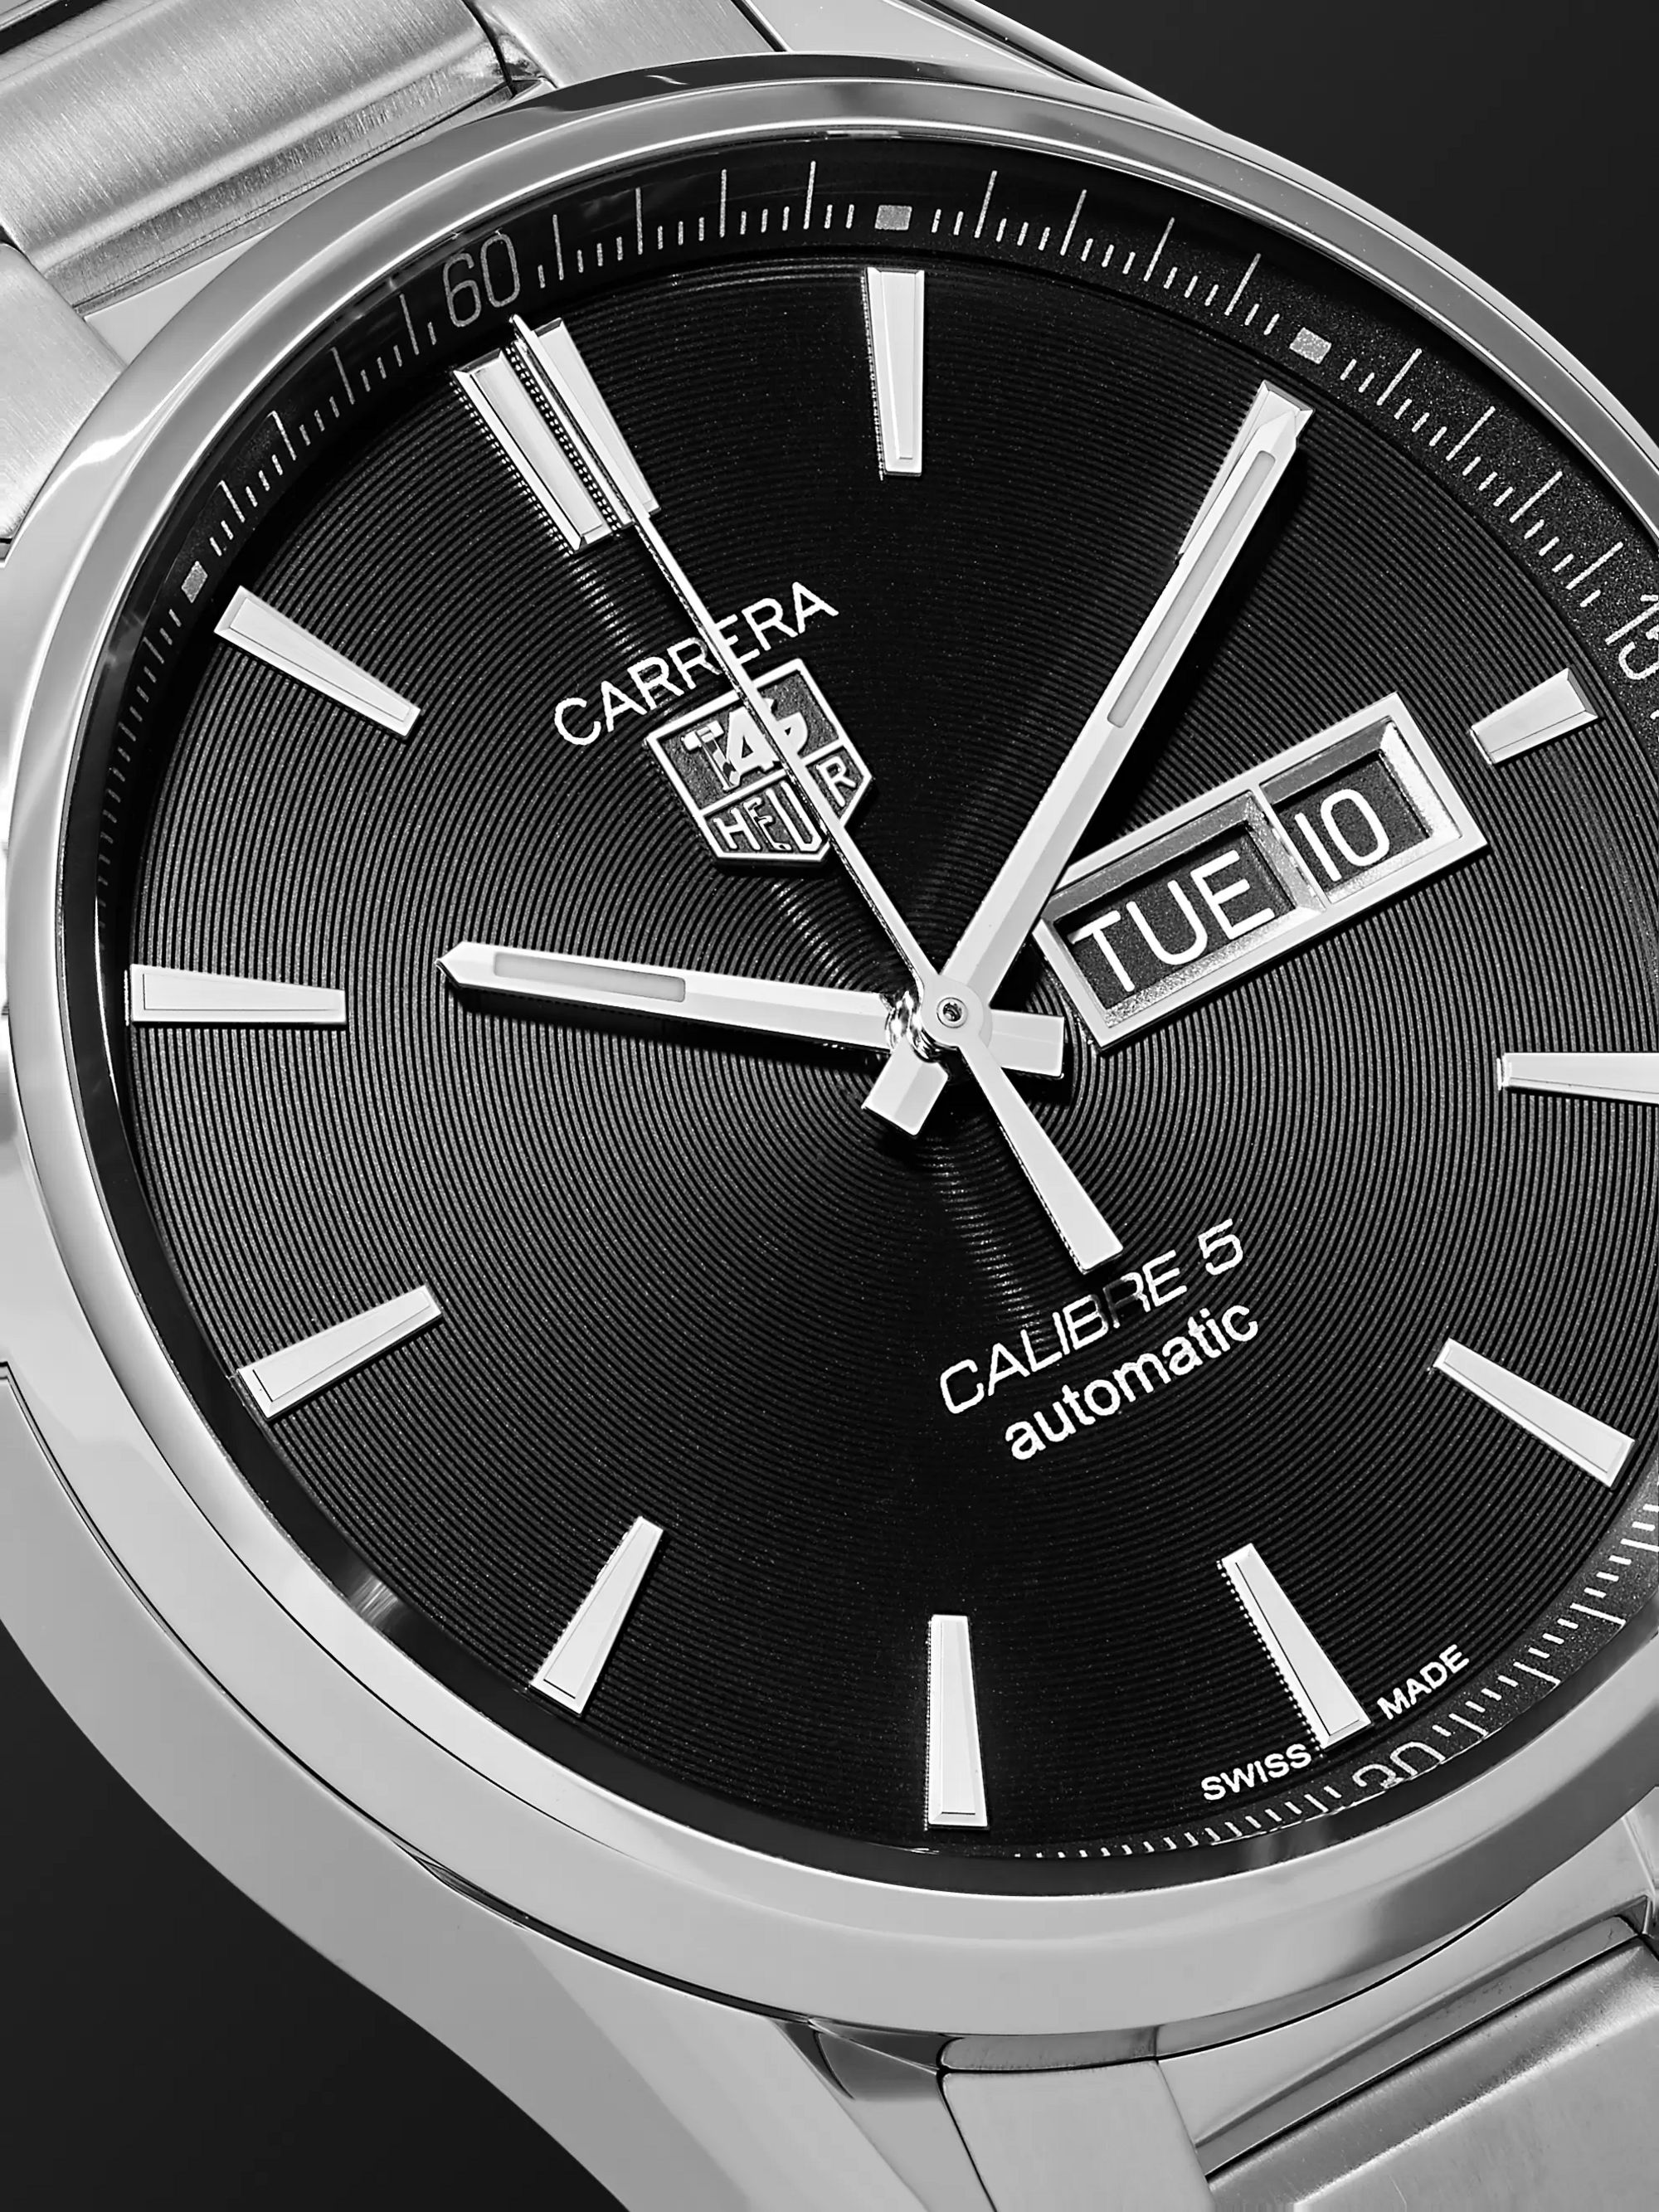 TAG Heuer Carrera Automatic 41mm Steel Watch, Ref. No. WAR201A.BA0723